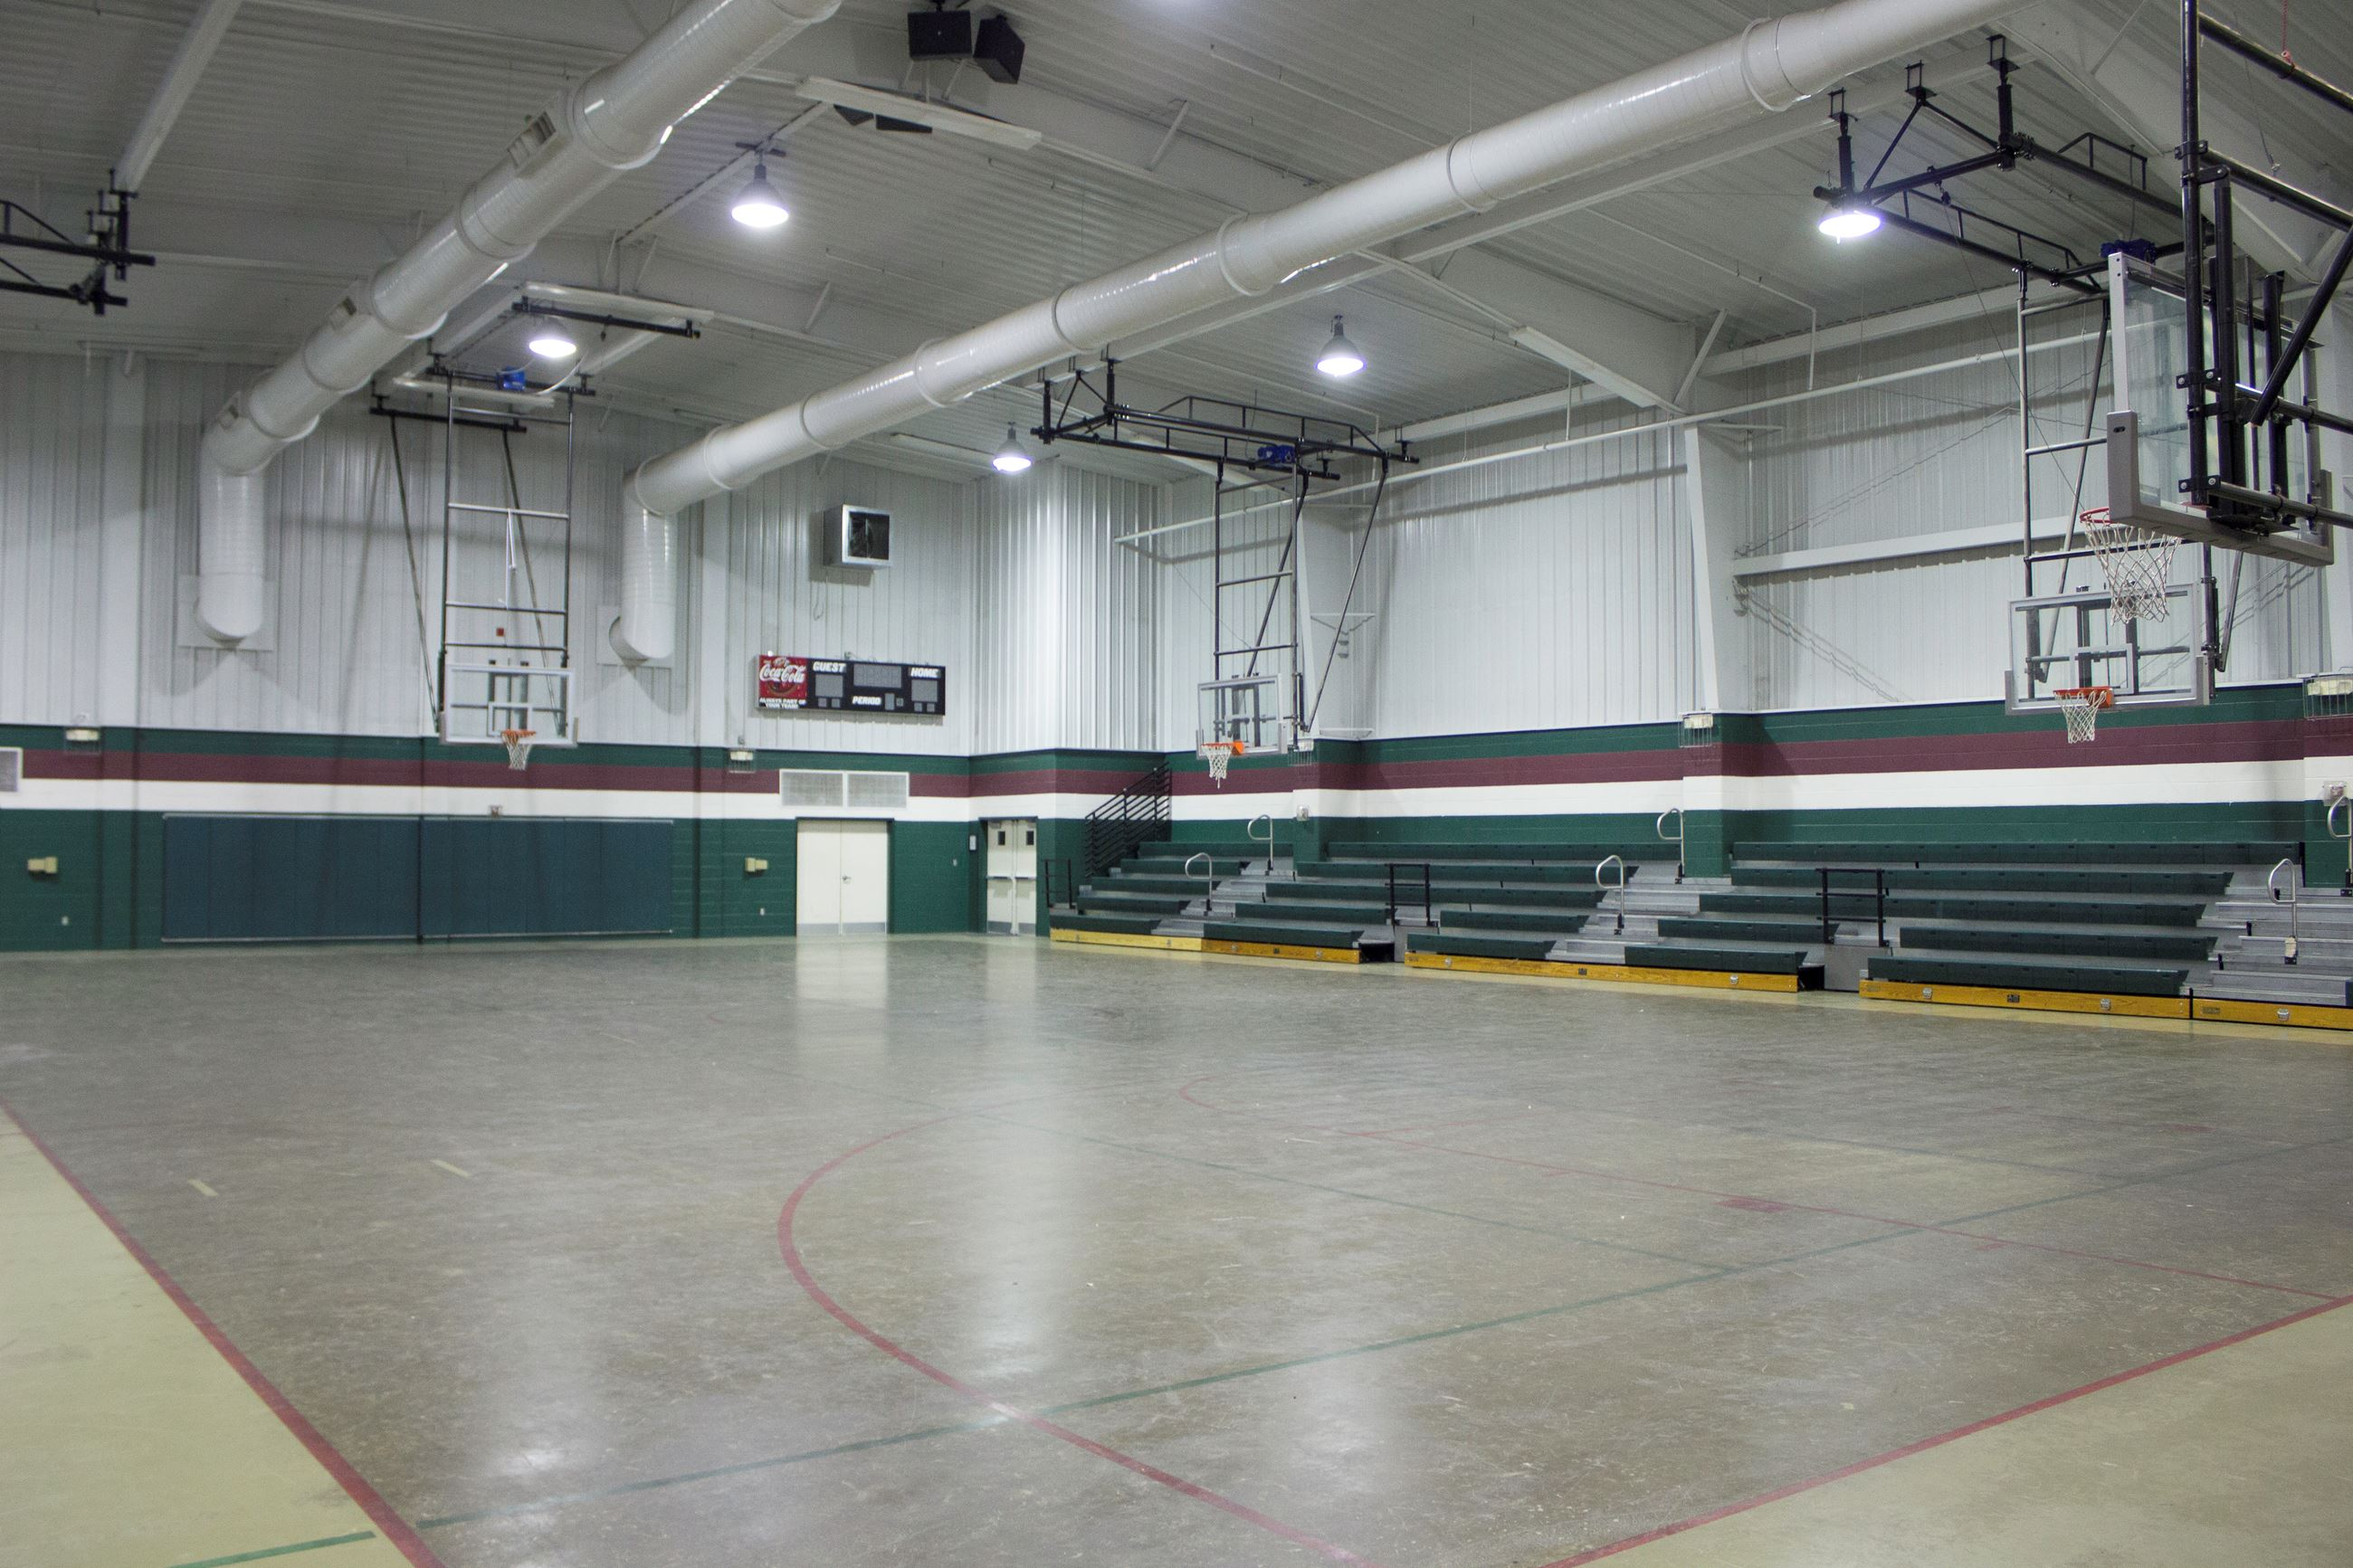 An image of a gymnasium with a full size basketball court and bleachers.